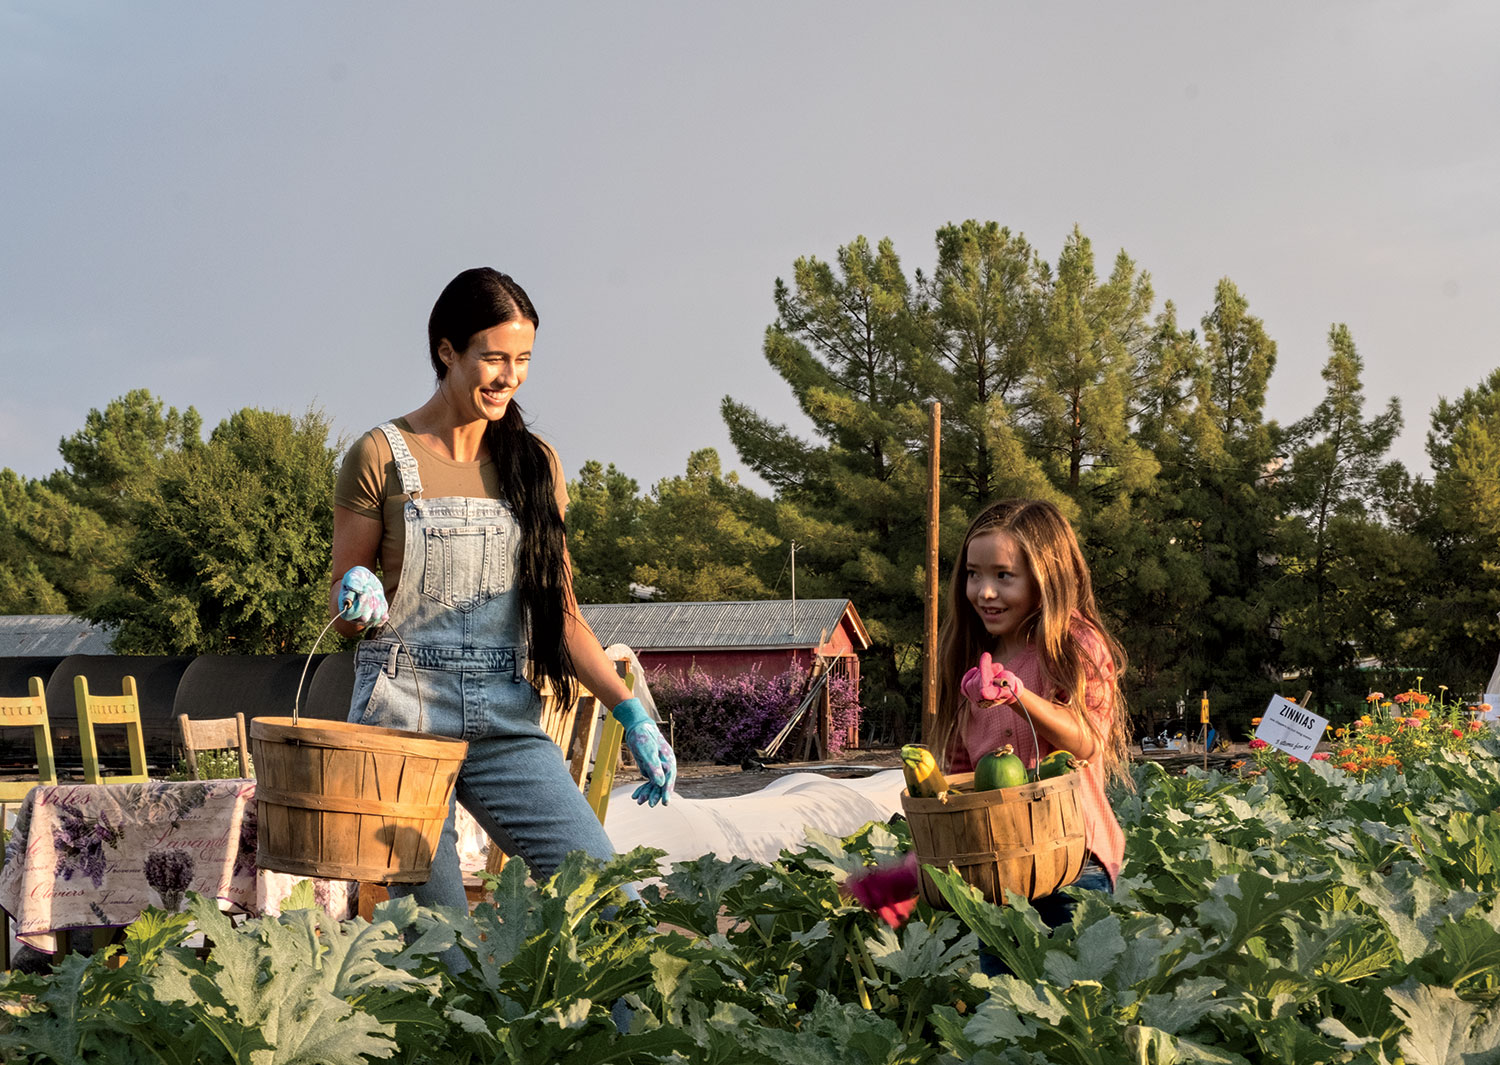 Schnepf Farms; Photo by Mirelle Inglefield, Models Lacey and June Nagao/Ford Robert Black Agency